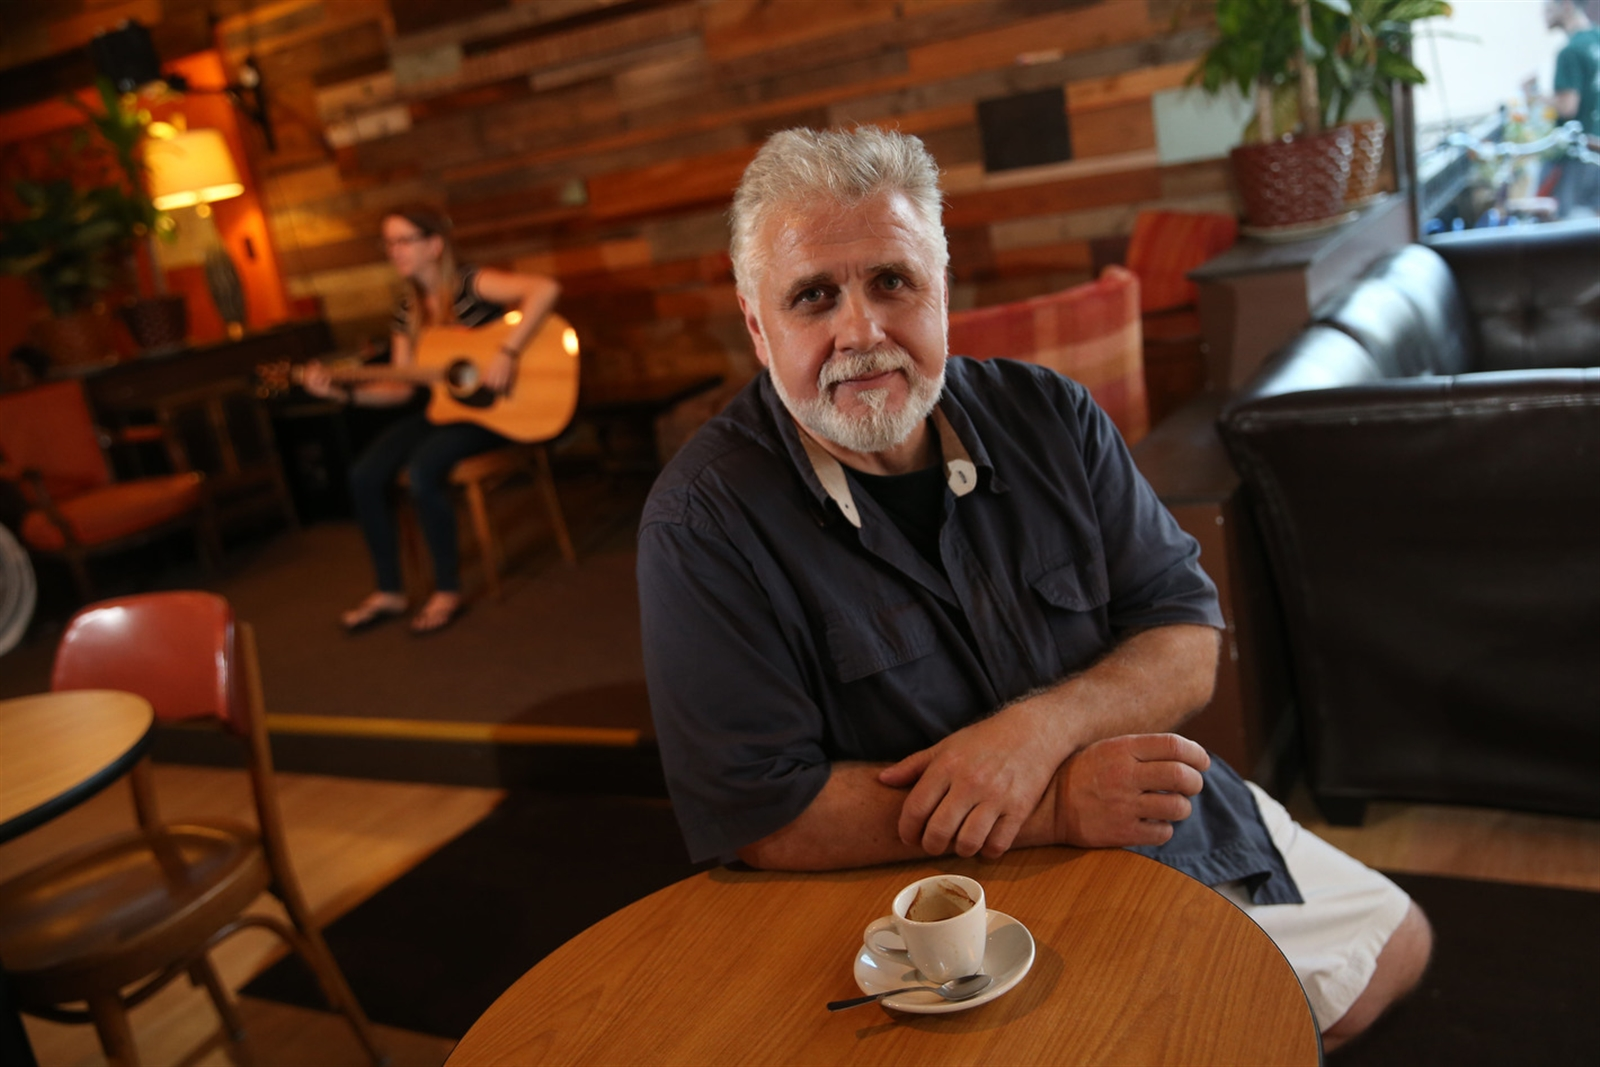 Daily Planet Coffee at 1862 Hertel Ave. is not only a coffee shop, but also a spot for community to gather and for musicians to gain an audience and teach young musicians, too. Owner Mike Caputi, an accomplished drummer, has a passion for music as well as coffee.